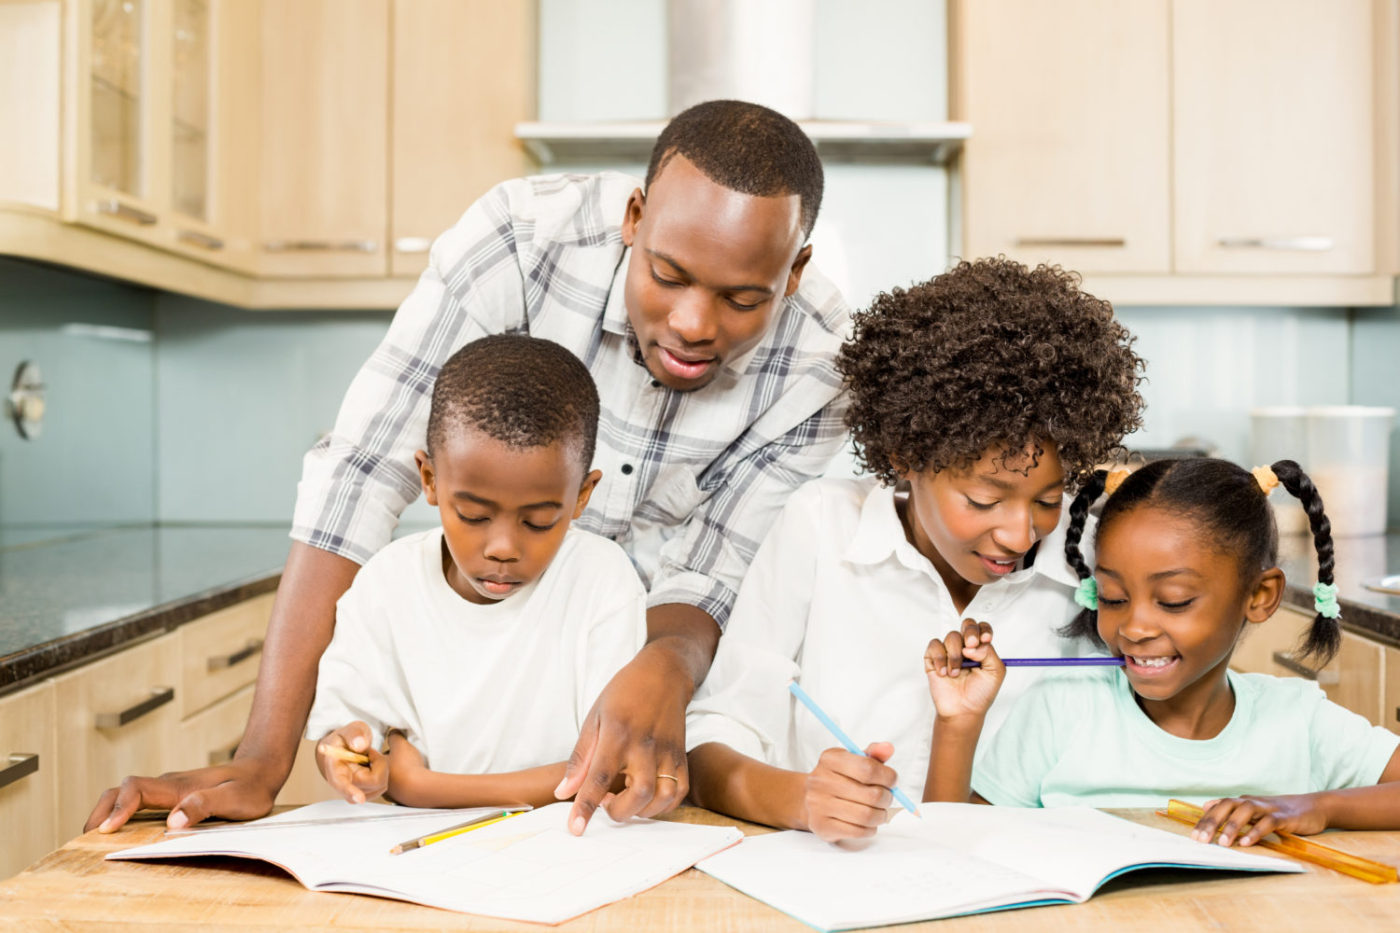 Black-parents-helping-children-with-homework-in-kitchen-1400x933, Getting ahead of the curve: Resources for parents who are laid off or struggling during the COVID-19 Crisis, Culture Currents